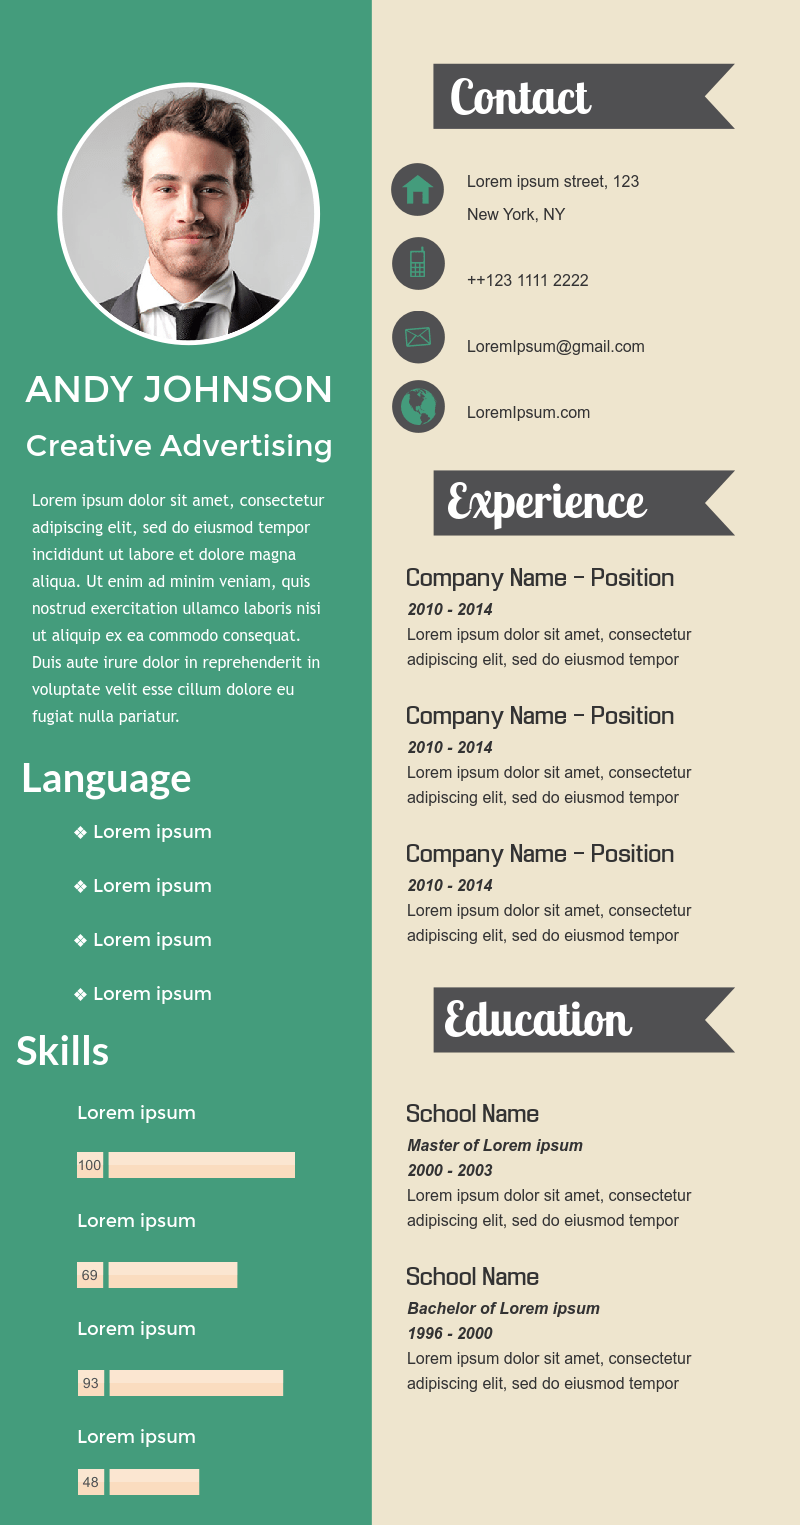 Simple professional visual resume available in Visme